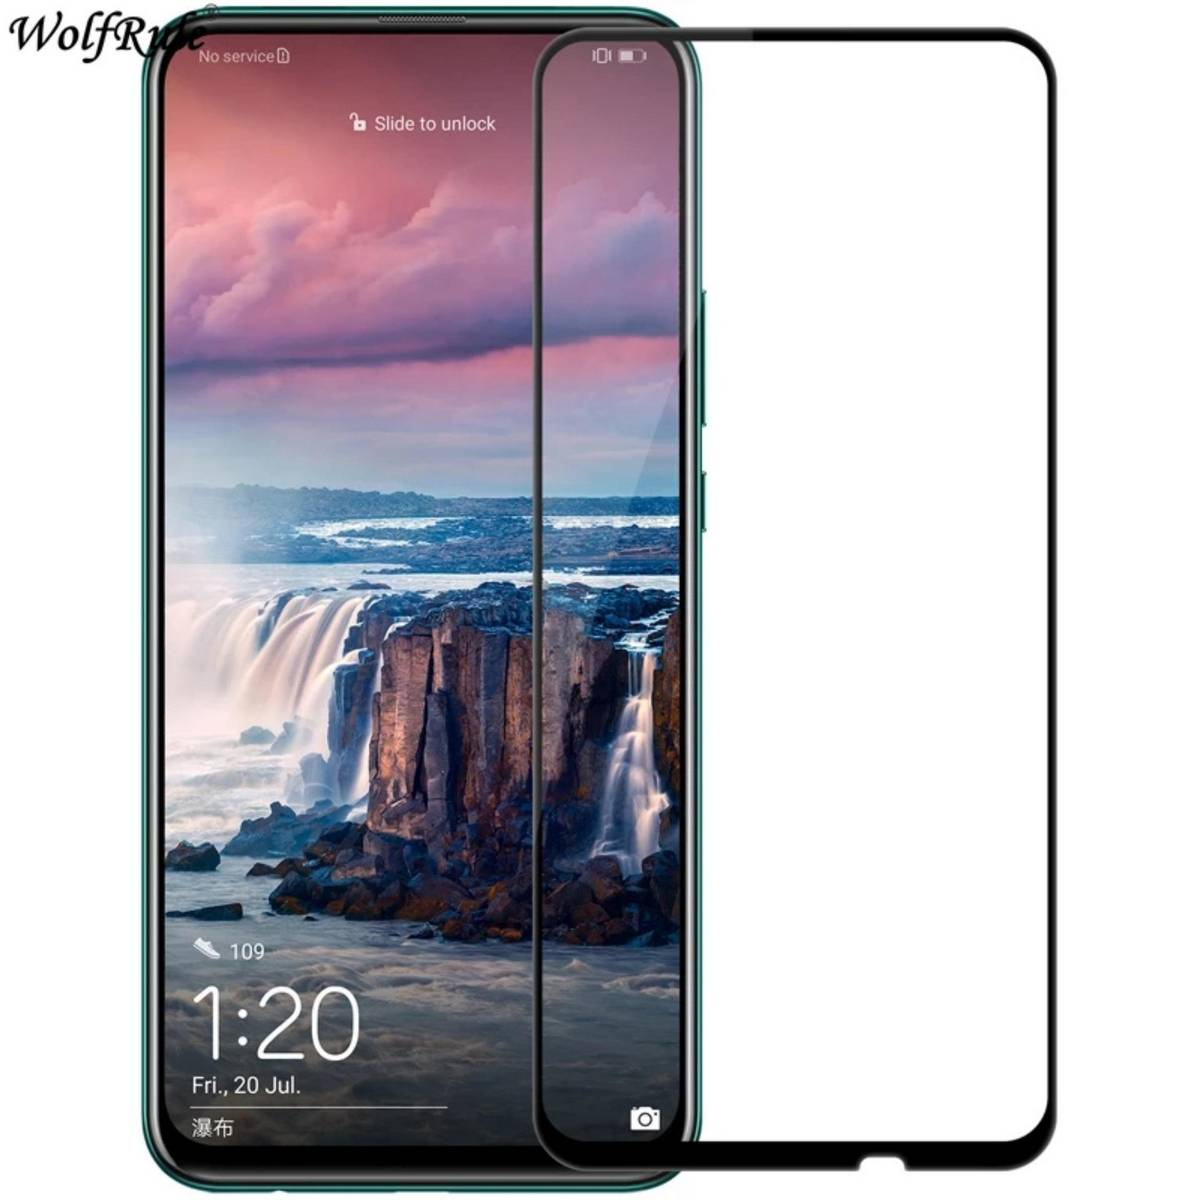 HUAWEI Y9 PRIME 2019 9D glass protector/screen protectors/tempered glass ultra thickness 0.33mm/9h hardness